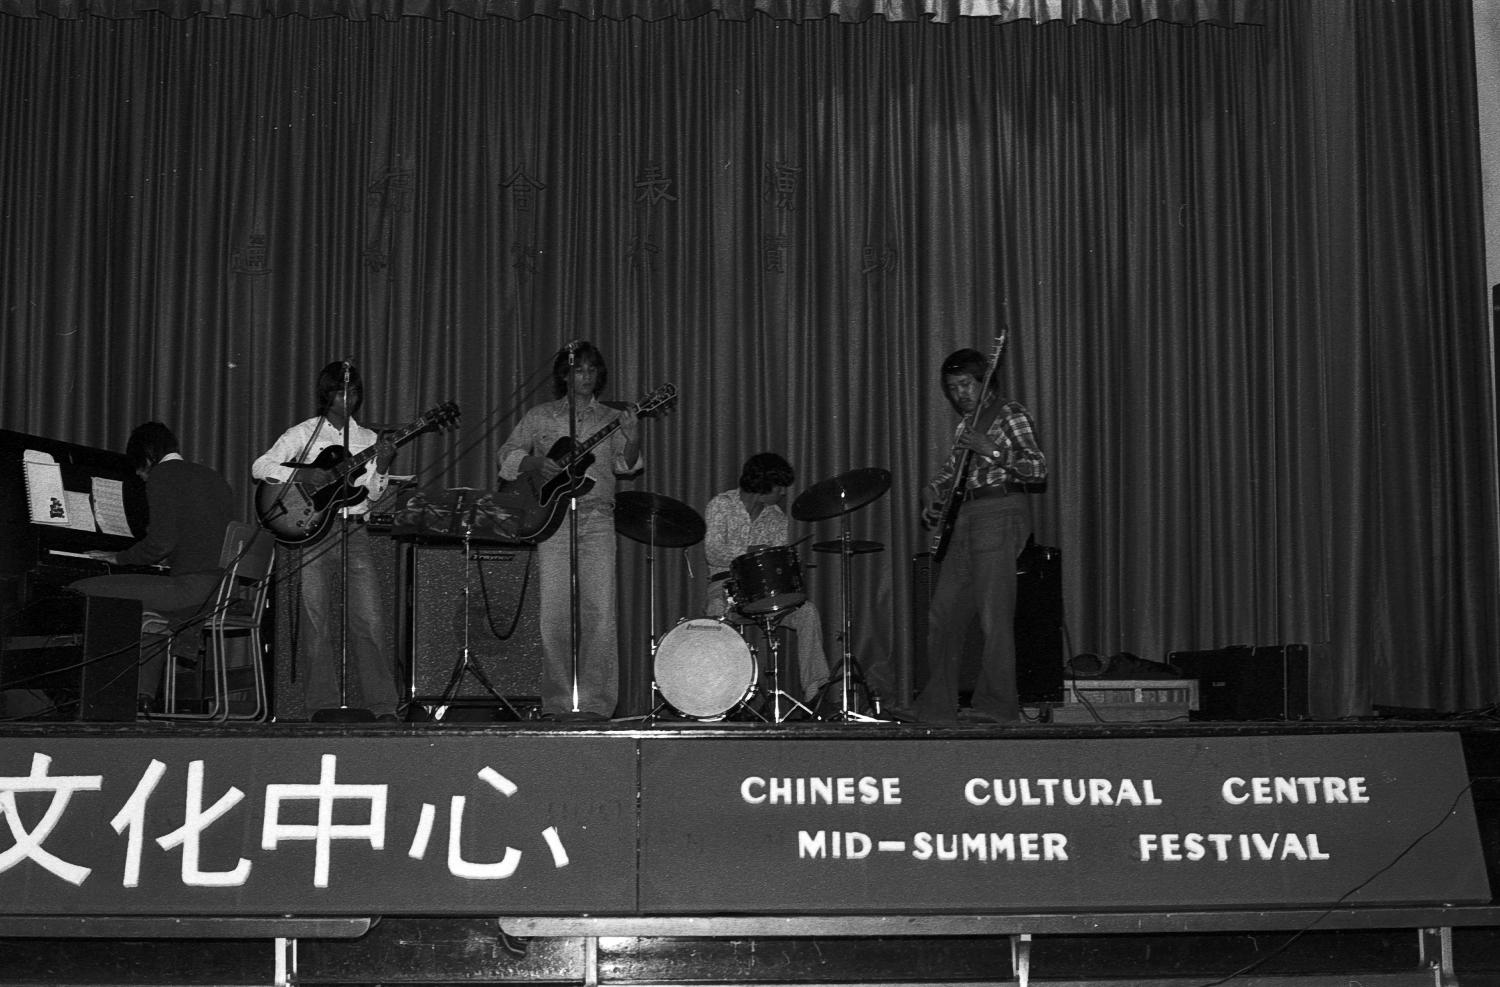 A band performing in a variety show at Strathcona Community Centre as part of the 1977 Mid-Summer Festival organized by the Chinese Cultural Centre of Vancouver. Photographer:  Paul Yee. Reference code AM1523-S6-F11-: 2008-010.0256.